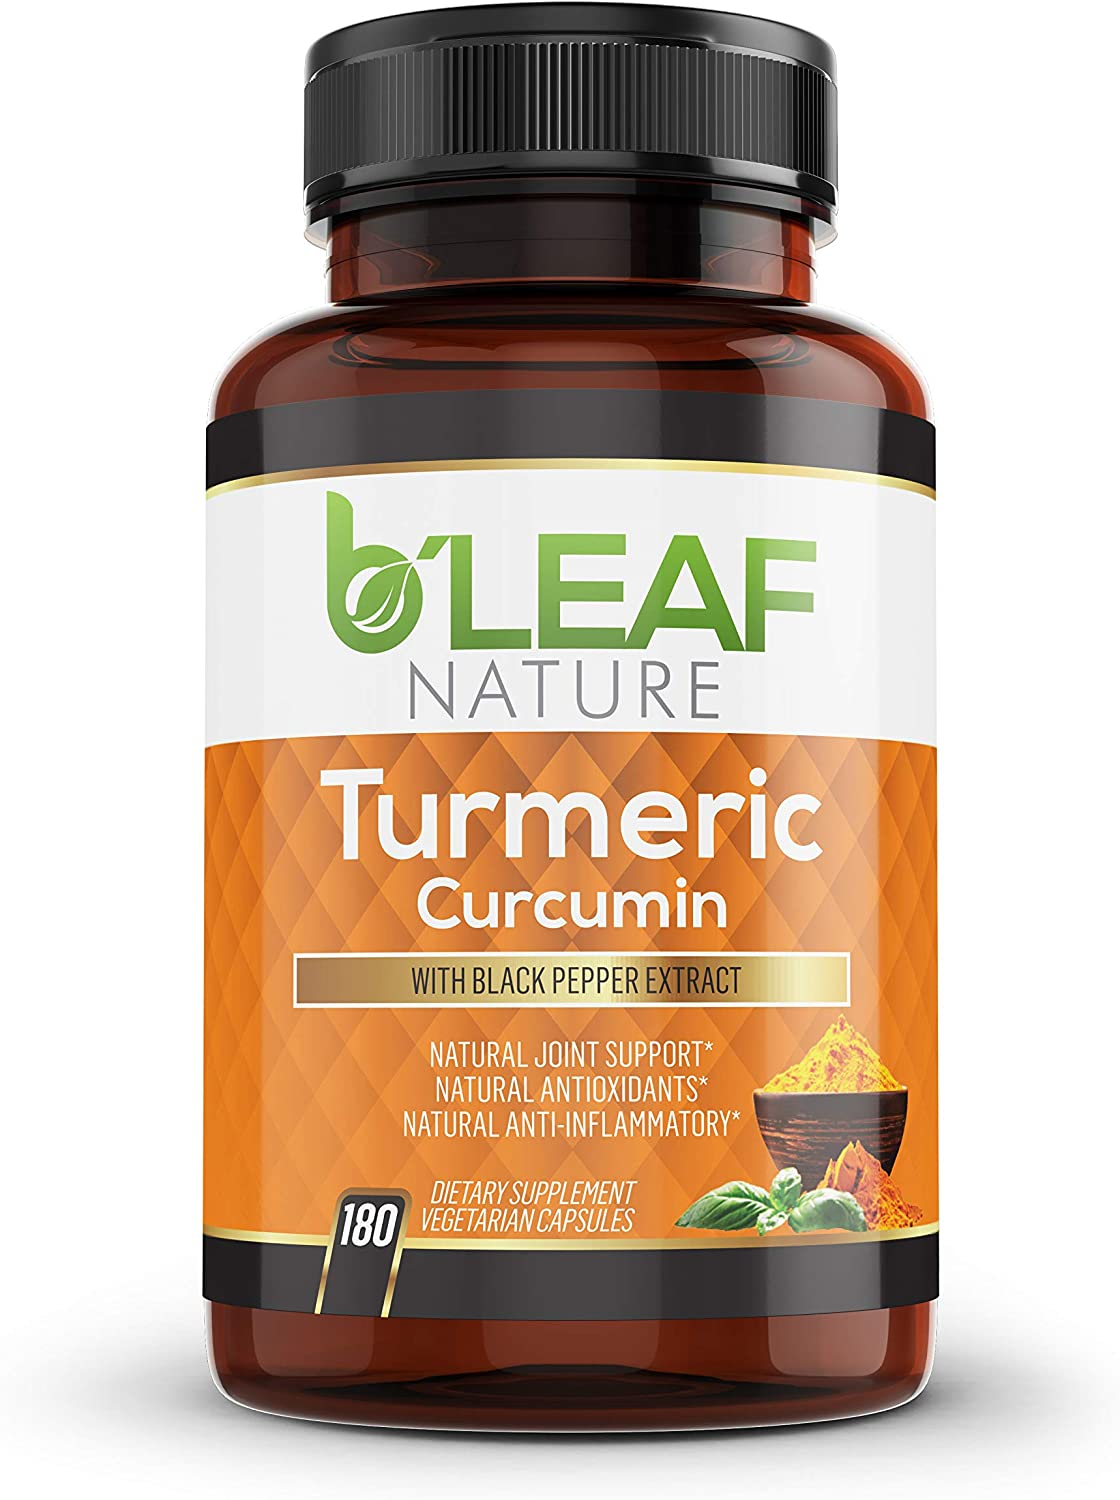 Turmeric Curcumin with Black Pepper - Extract 1300mg Genuine Serving Sale Special Price 9